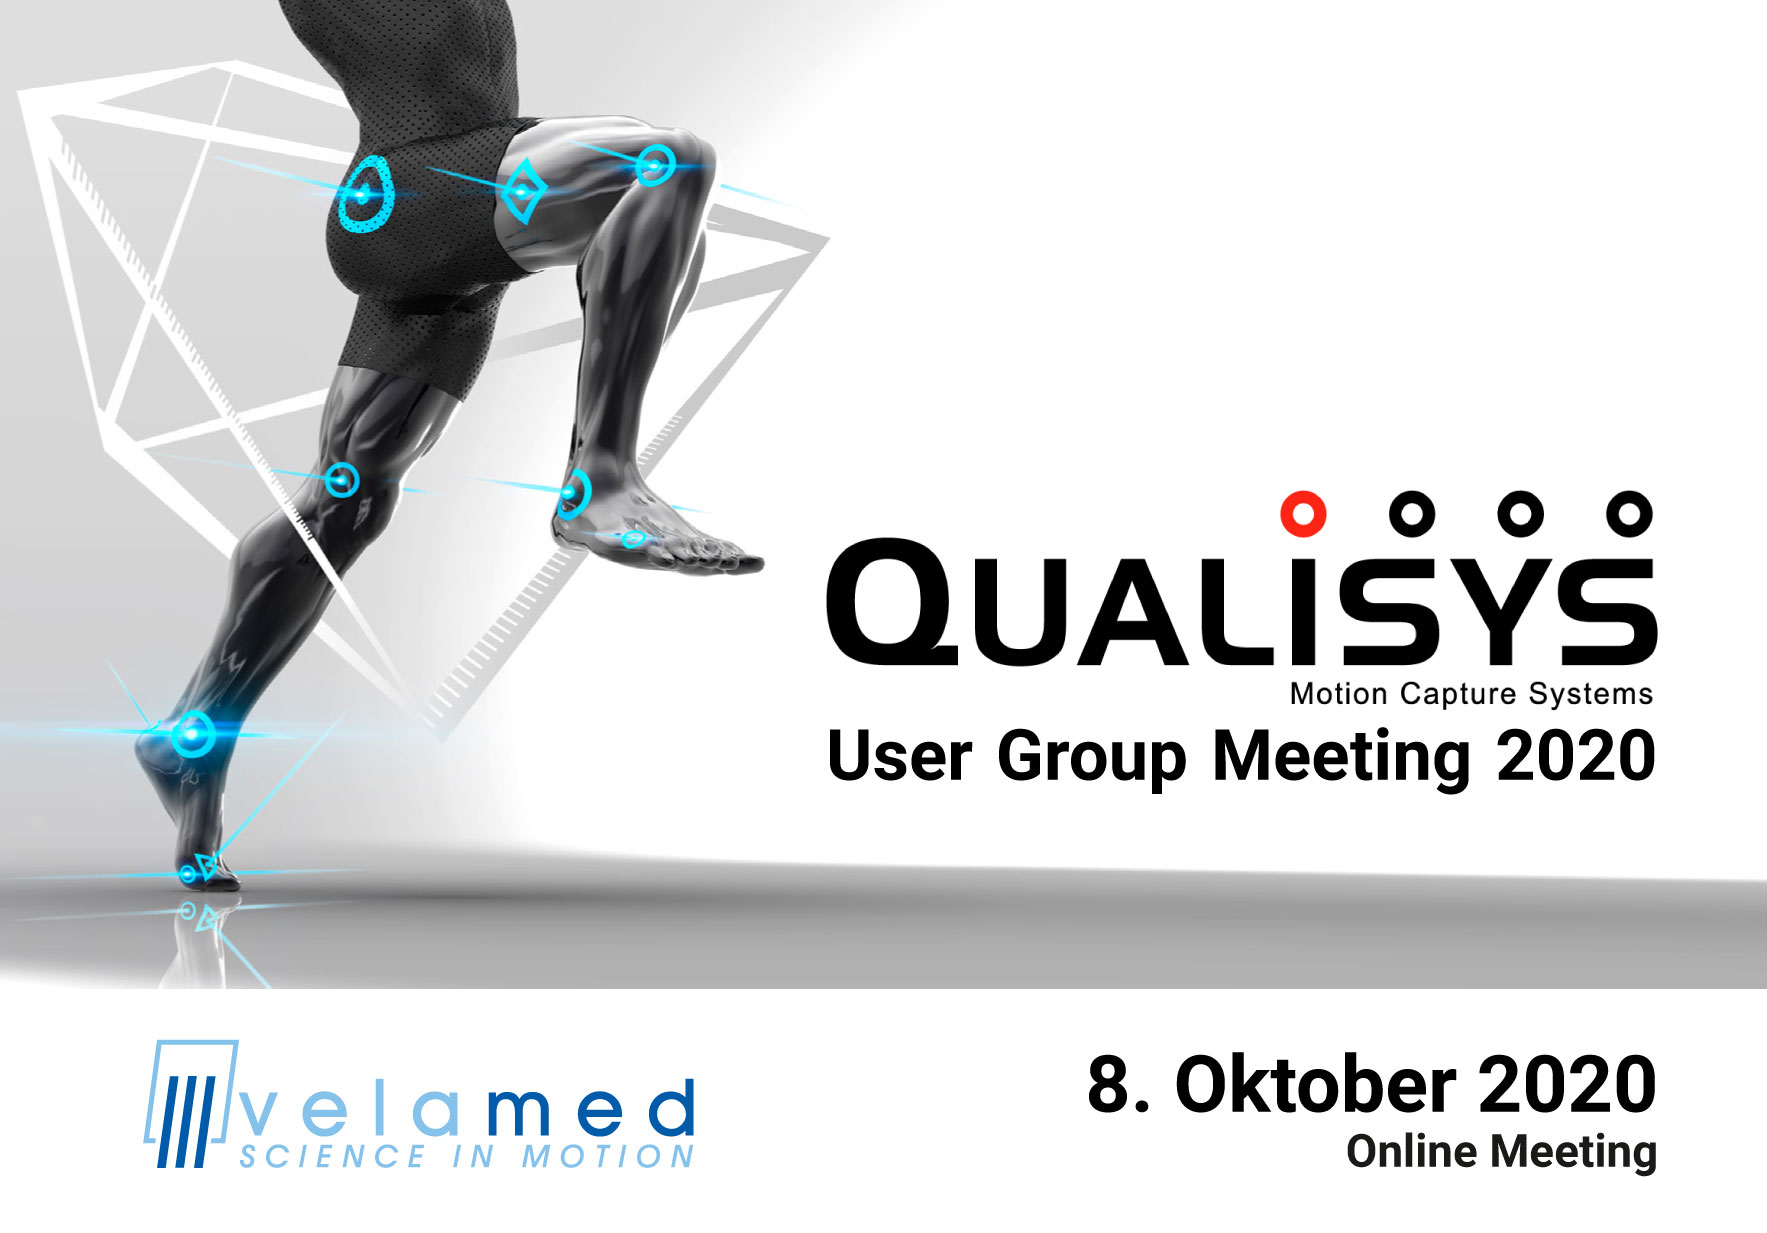 Qualisys Usergroup Meeting